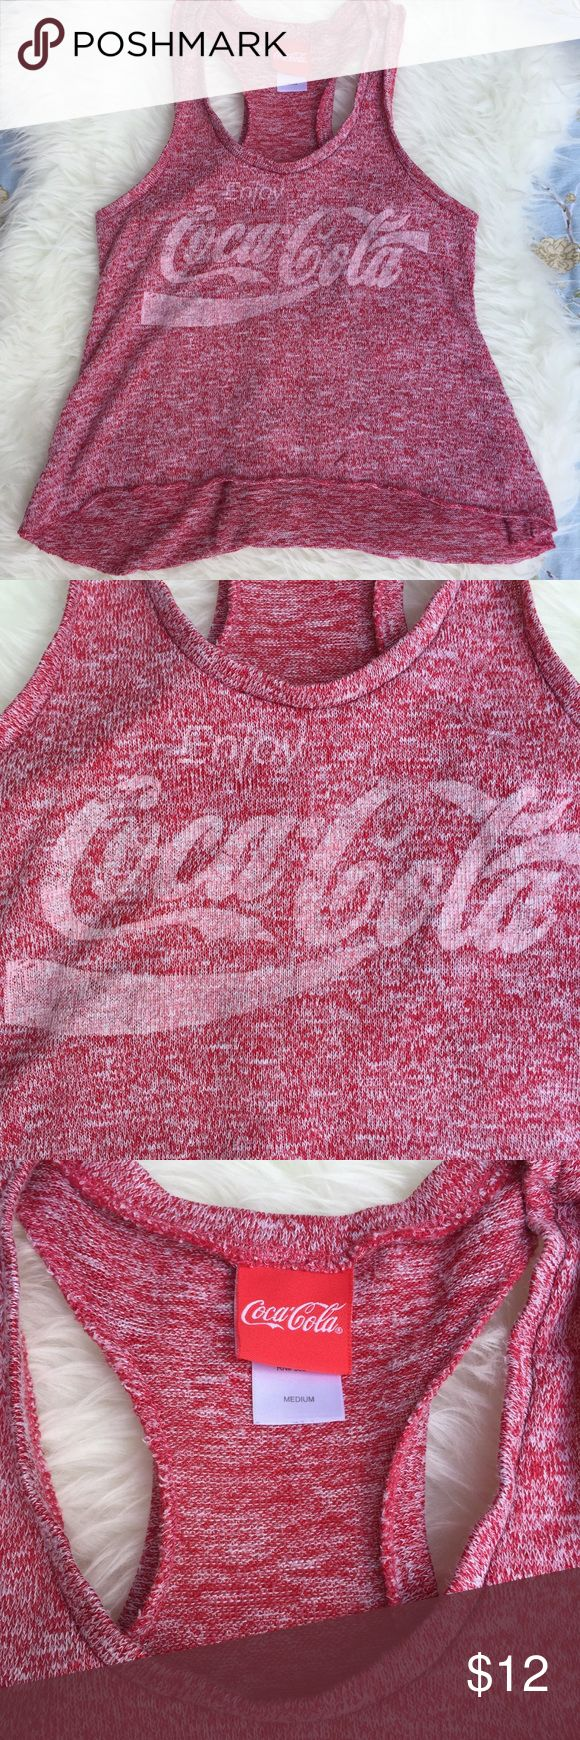 "Coca Cola racerback tank red & white knit Coca-Cola racerback tank top in red and white knit material. 55% rayon 43% polyester 2% spandex. Super cute with cut off's or jeans. Could also be adorable as a Halloween costume and your date could go as Jack Daniels in a Jack Daniels t-shirt. Approximate measurements: 🌹Bust: 16.5"" 🌹Length: 20"" front, 22"" back. Coca Cola Tops Tank Tops"